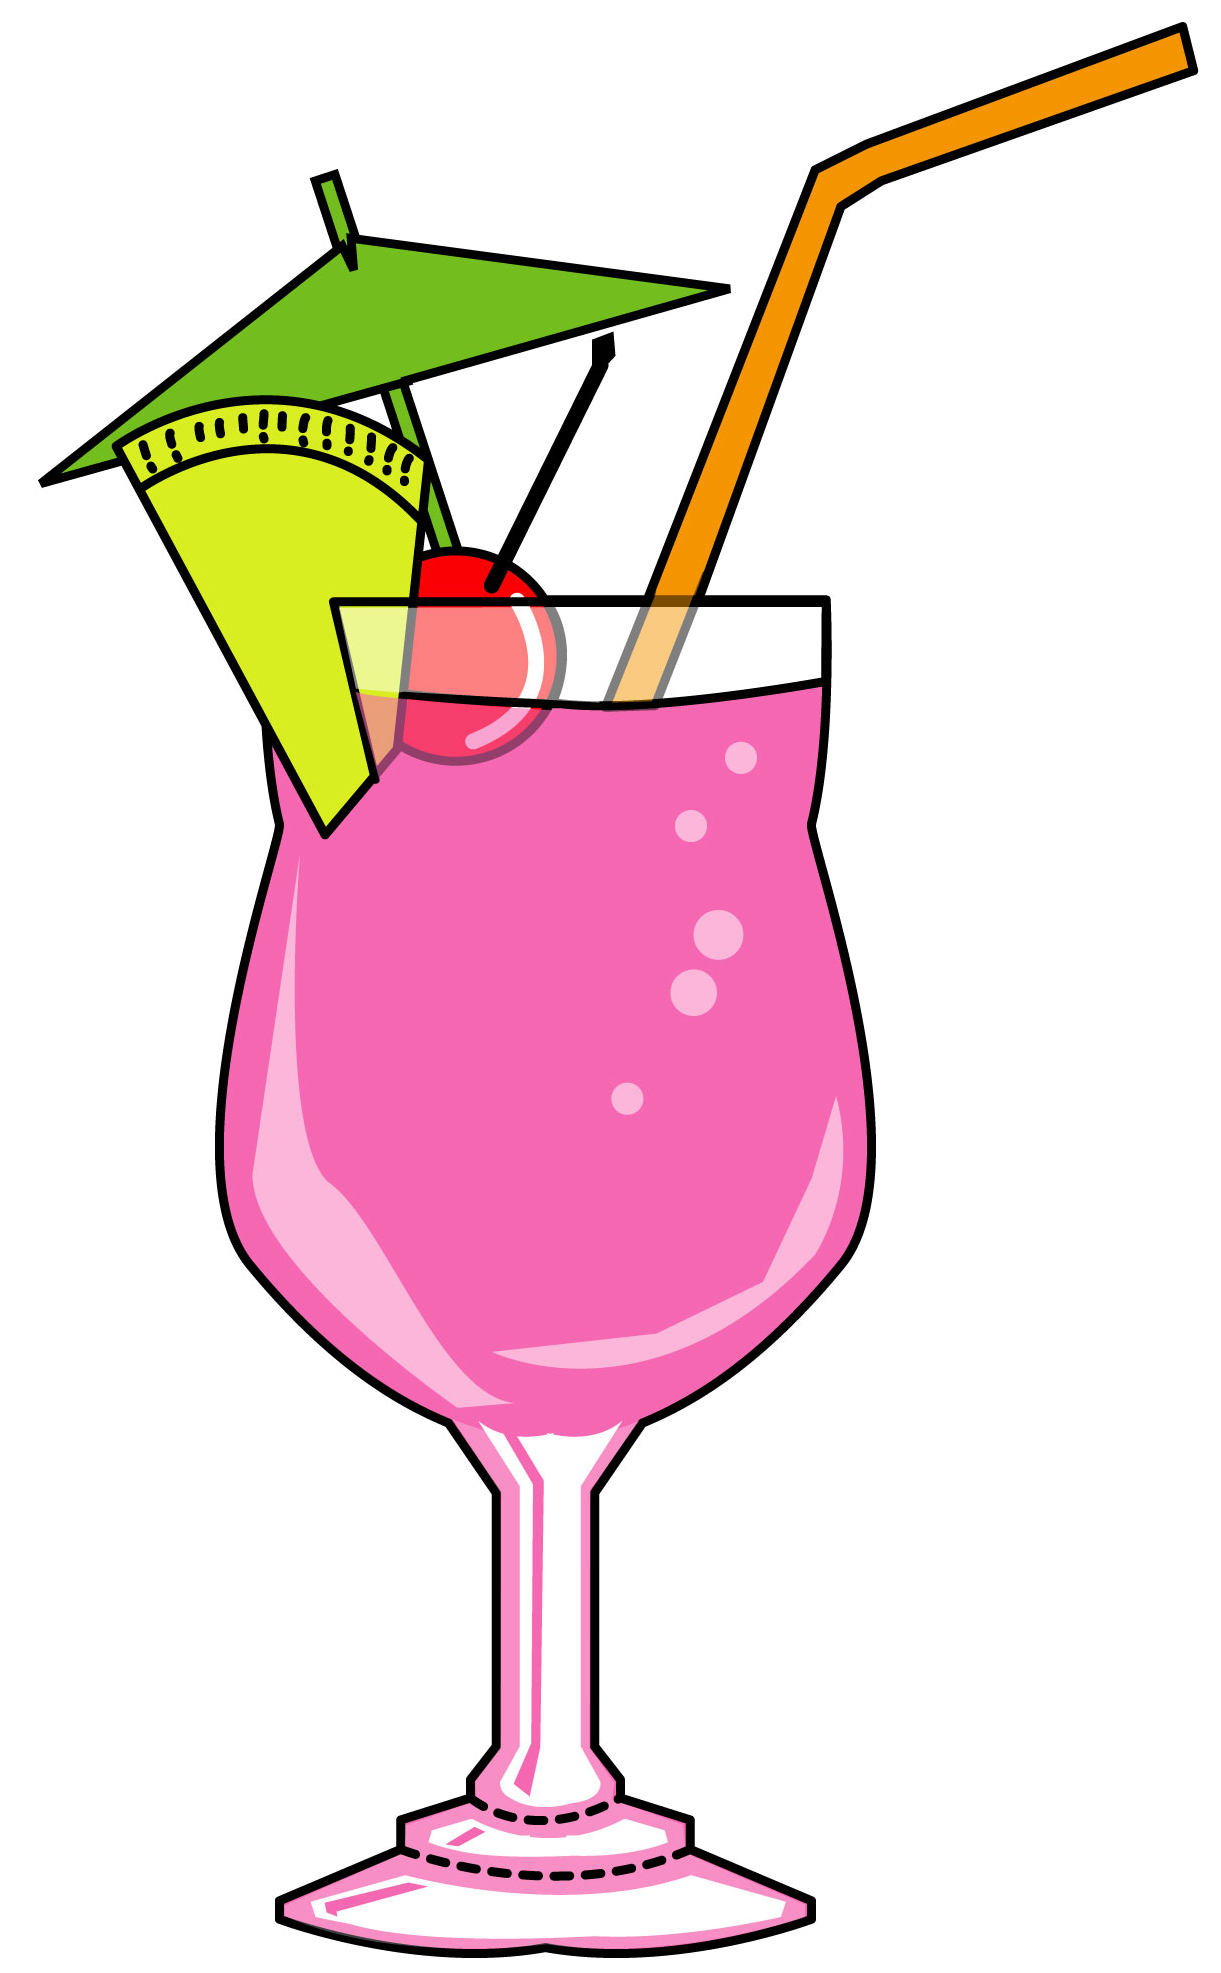 Cocktails cliparts kostenlos picture Flower Card Vector Travel Summer Holiday Illustration Drink ... picture